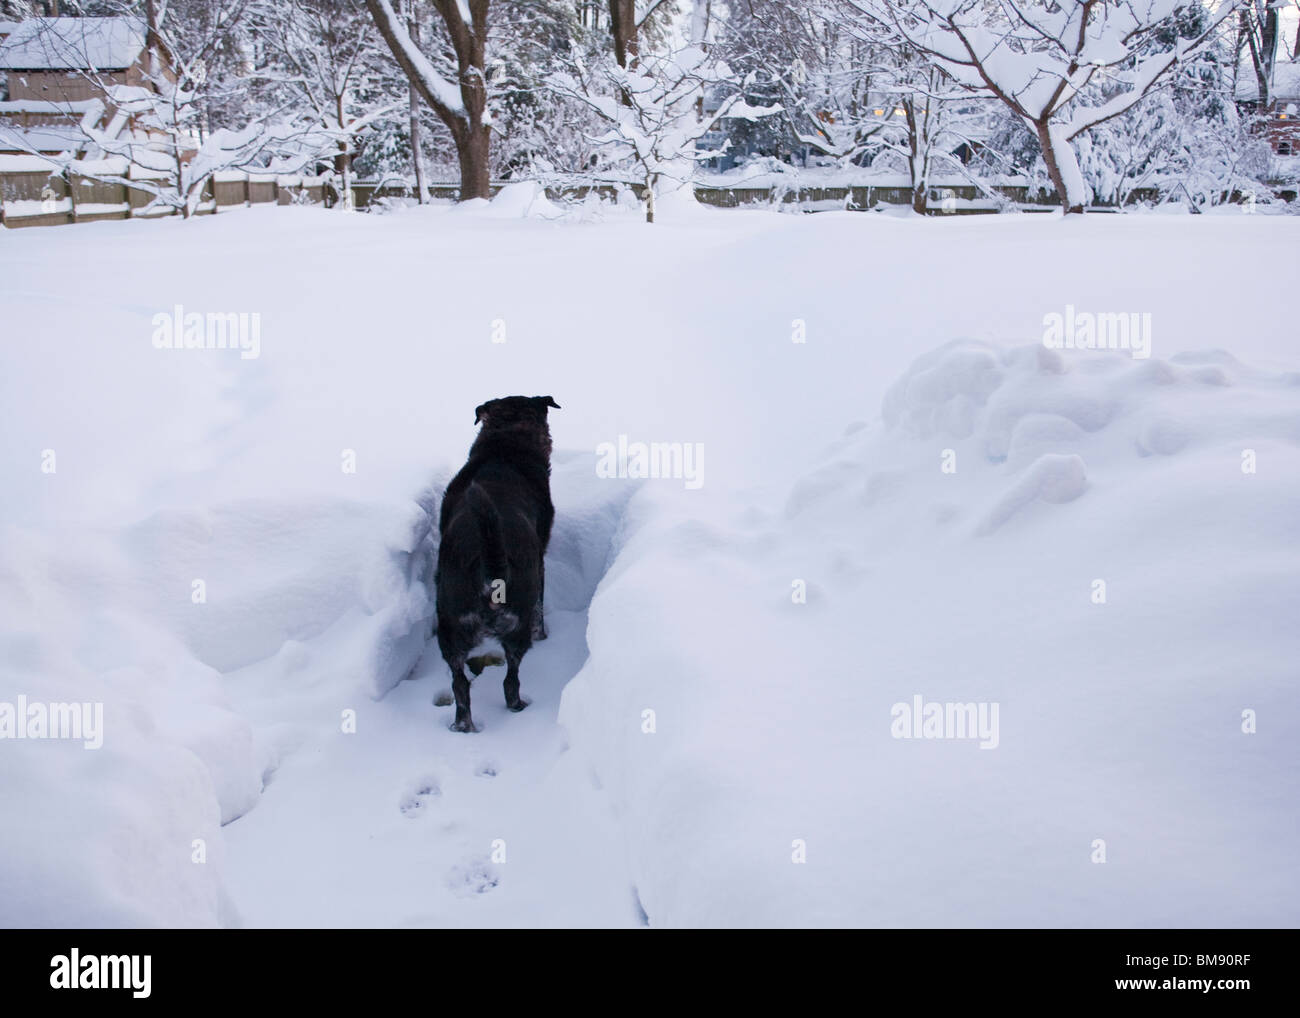 Black dog trapped in snow - Stock Image